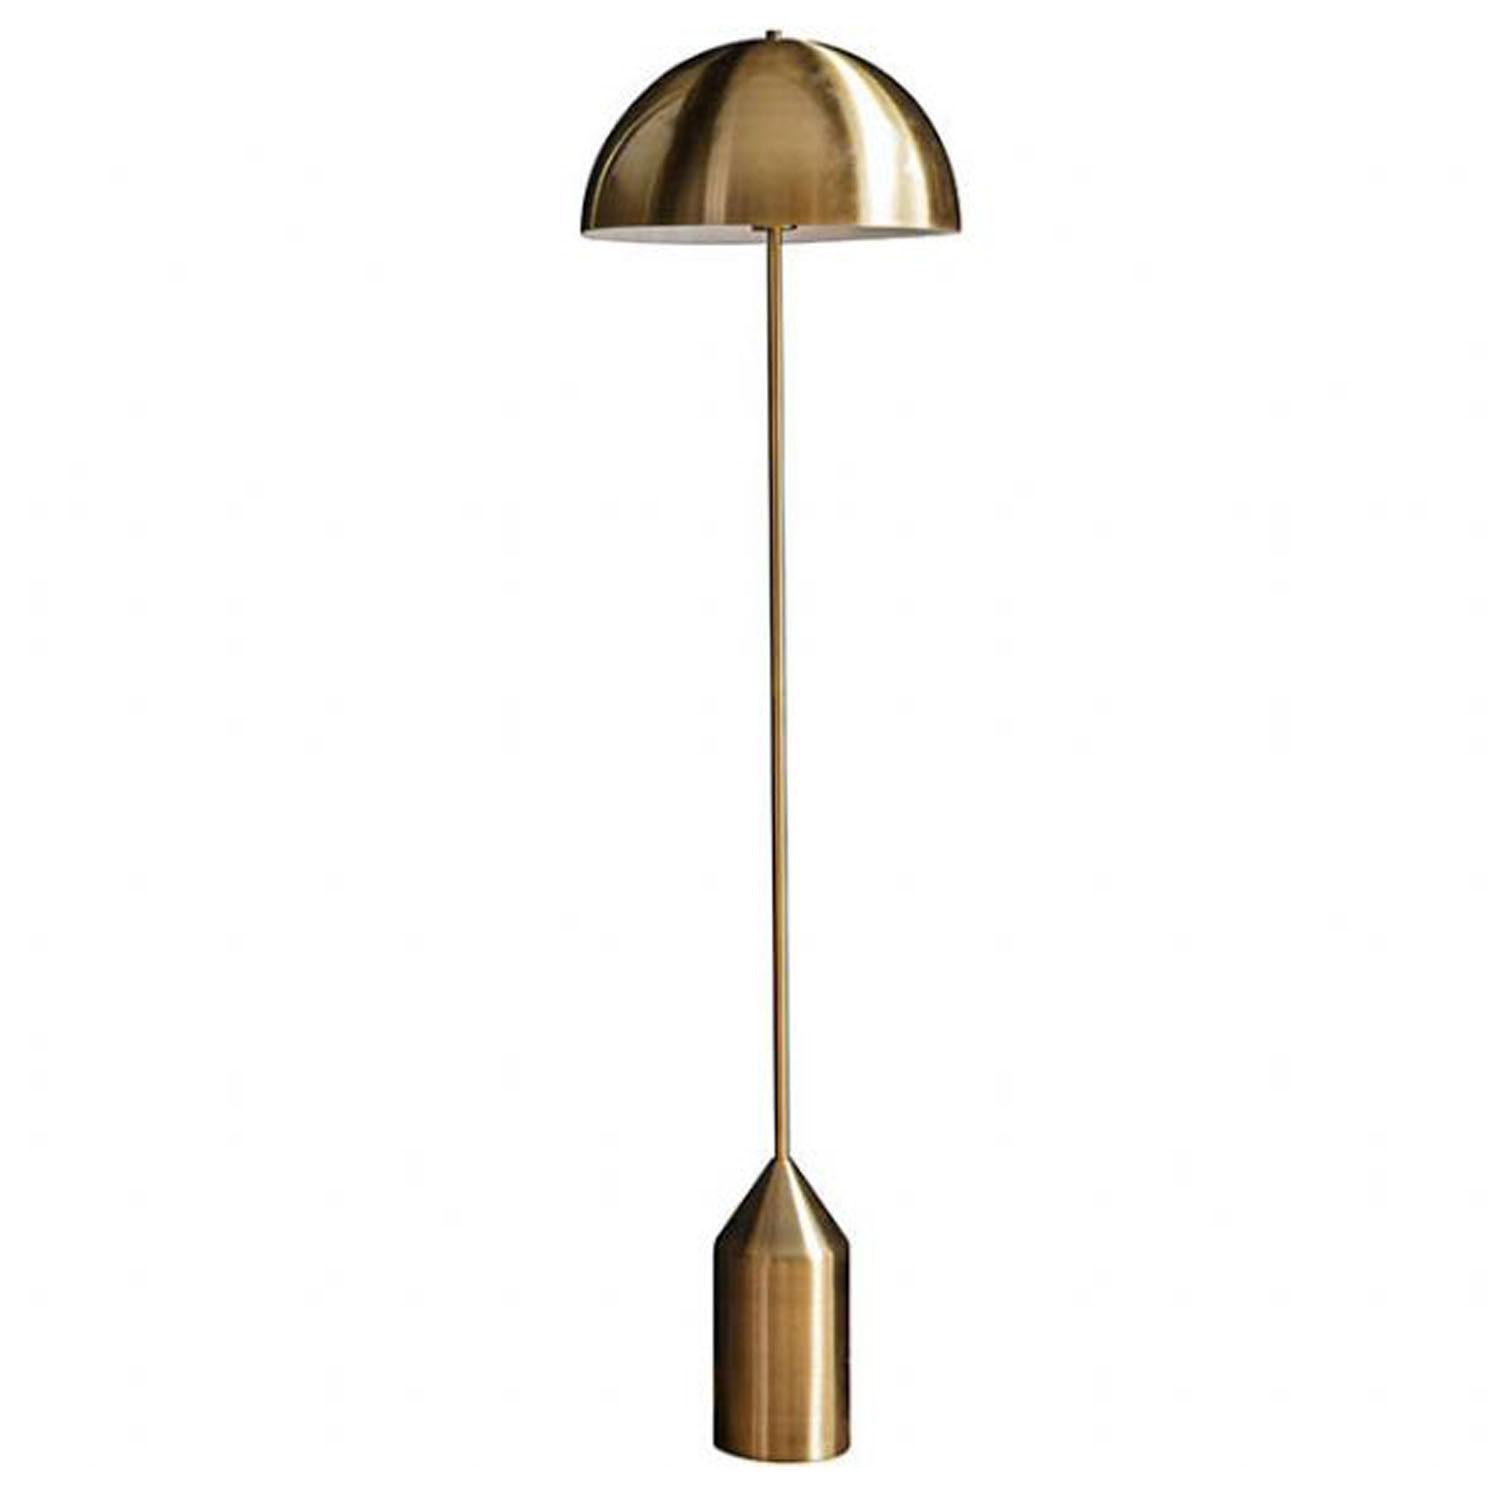 00382 Atlas floor lamp